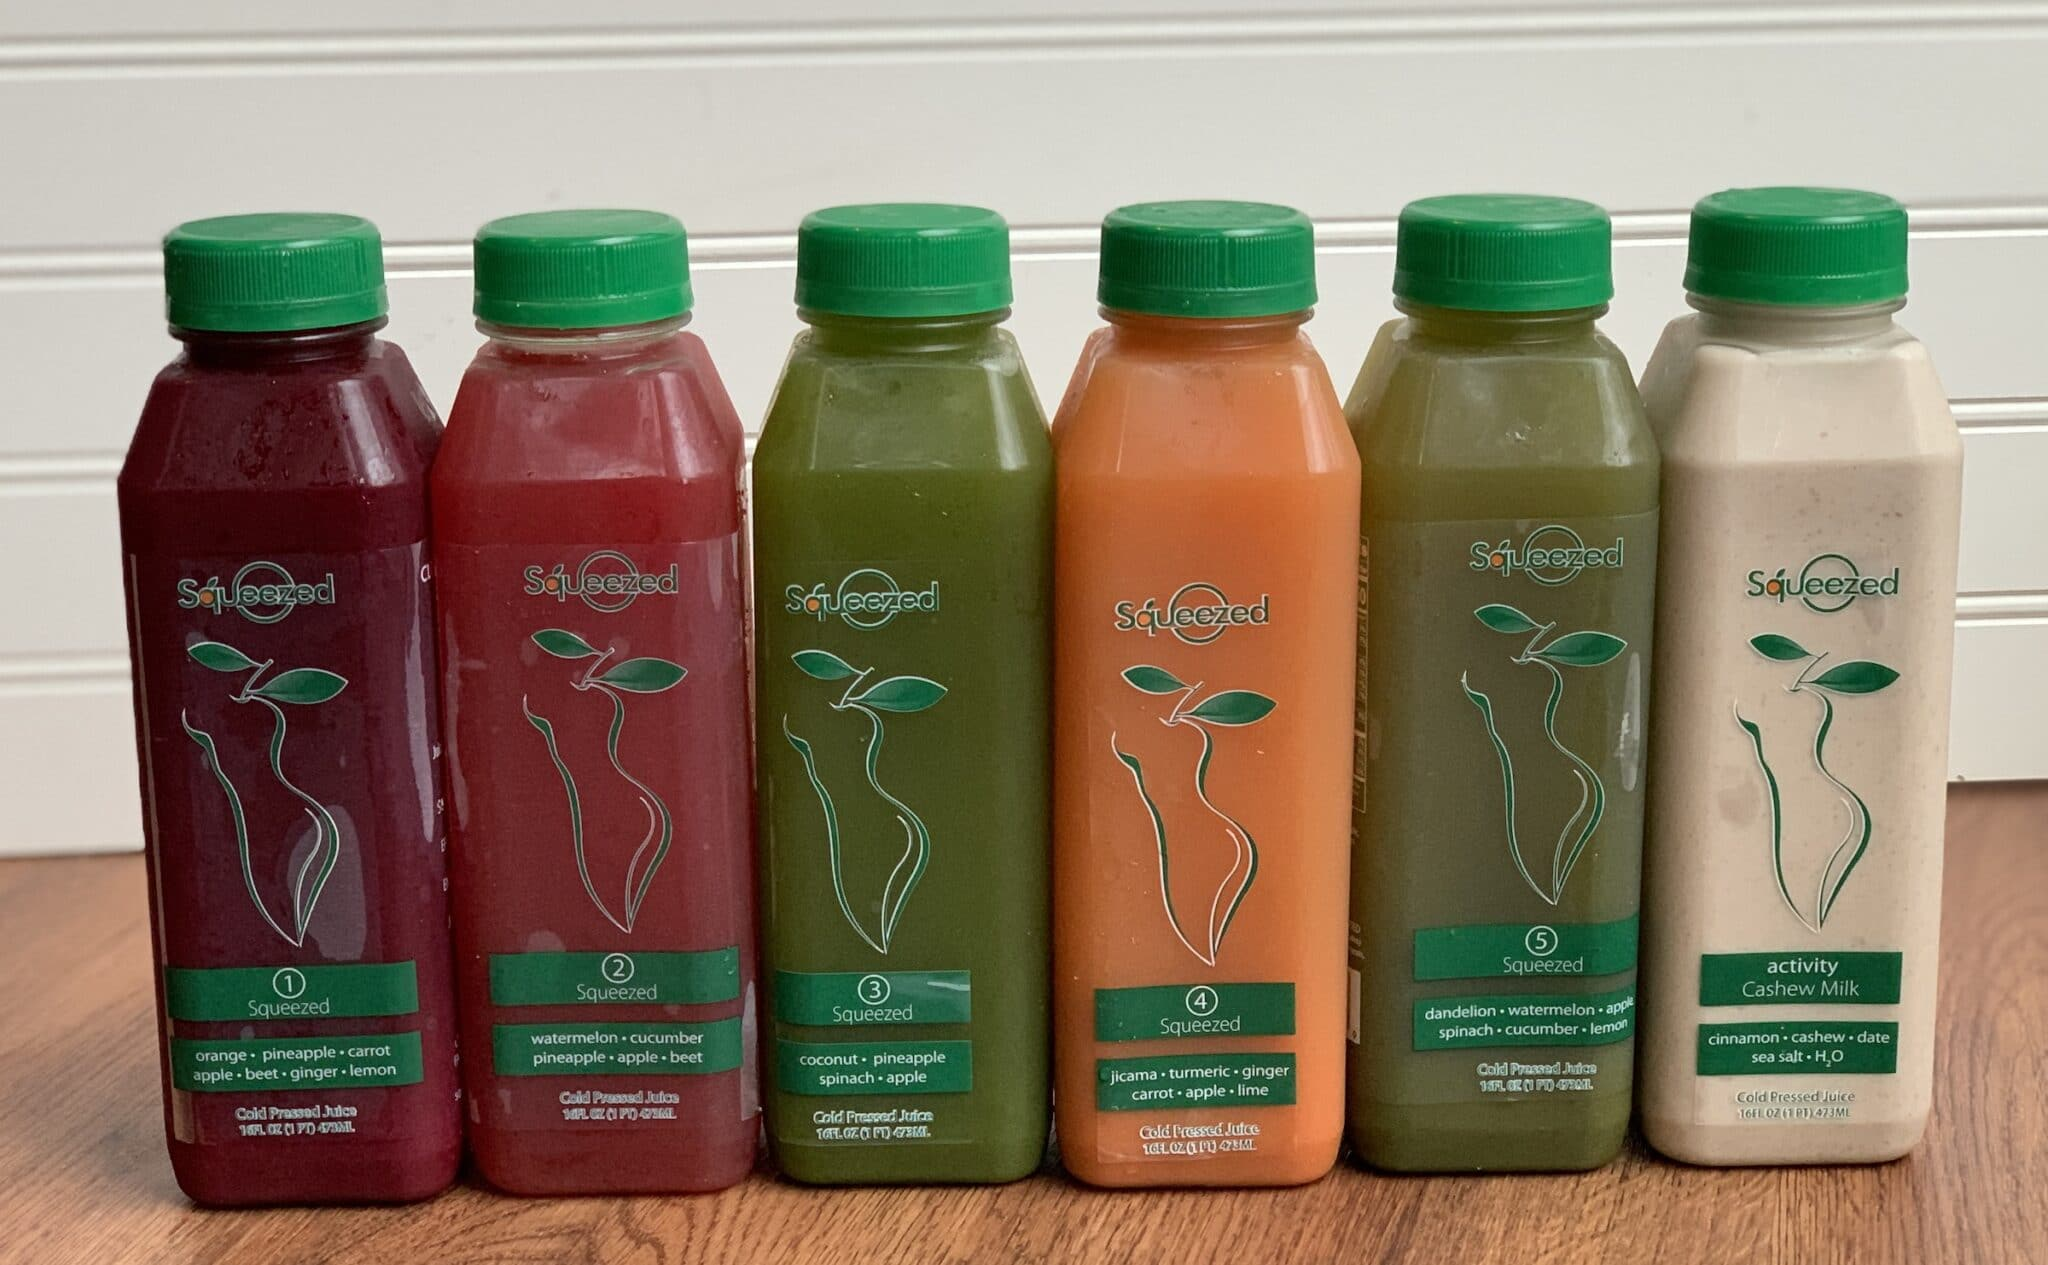 Squeezed cleanse line up